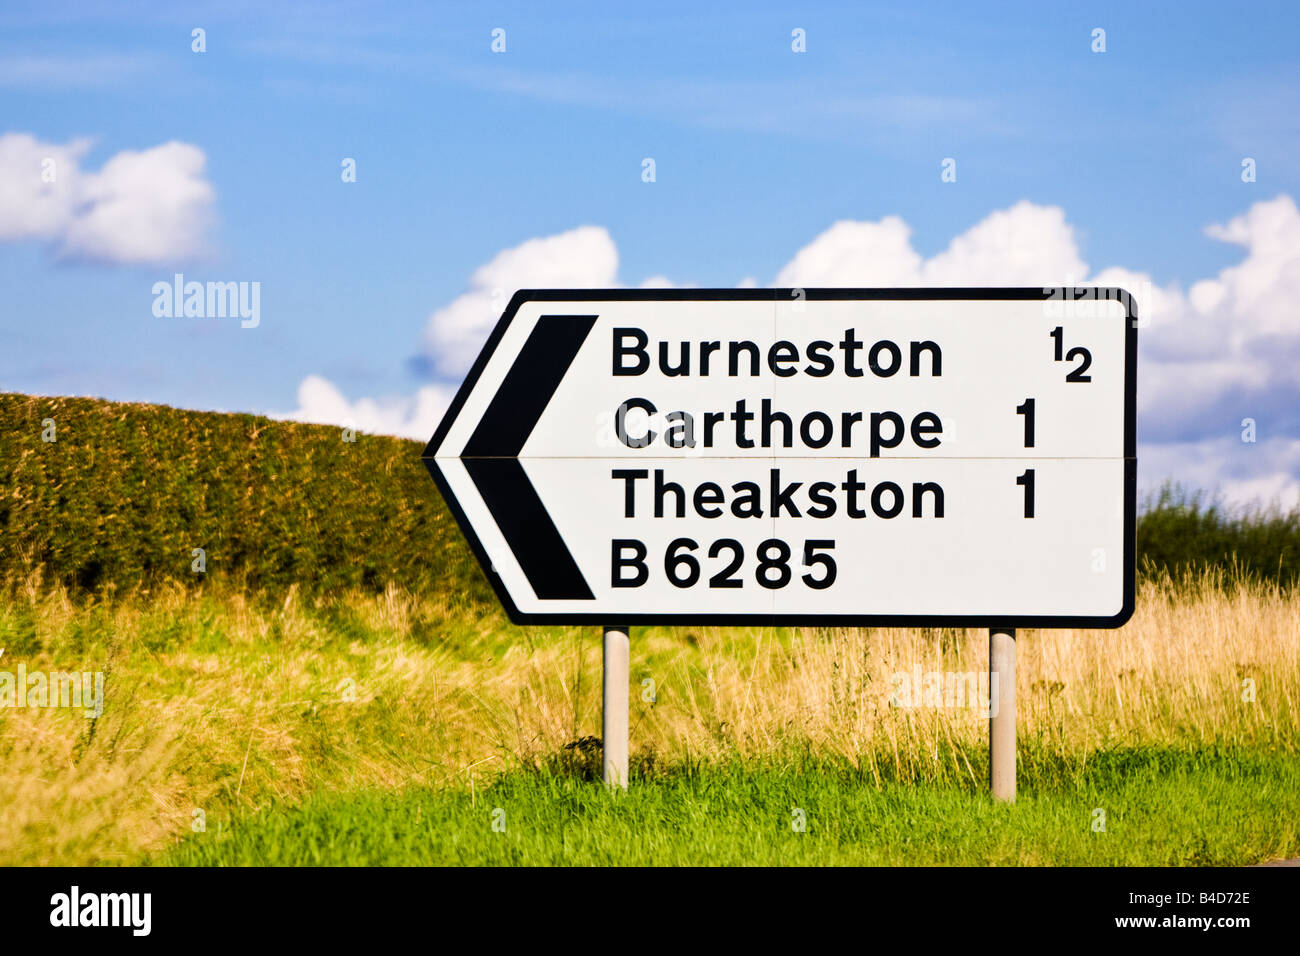 B road sign non-primary route traffic UK road sign with number and distance information England - Stock Image